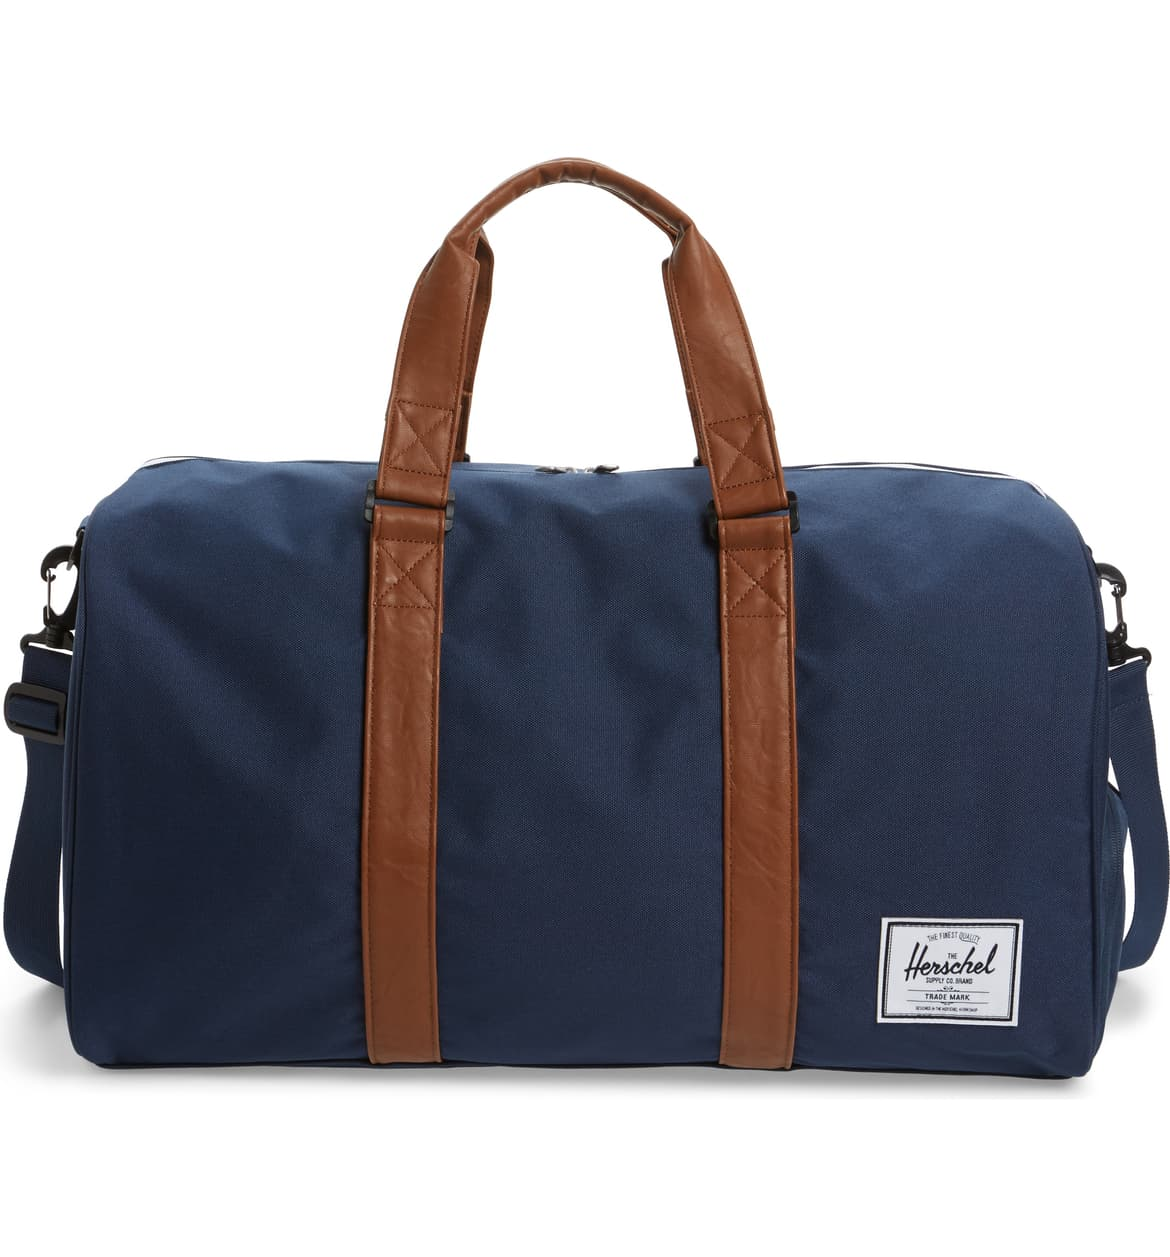 <p>Perfect for the gym or the dad on the go.{&nbsp;} $85.00 at Nordstrom. (Image: Nordstrom){&nbsp;}</p><p></p>